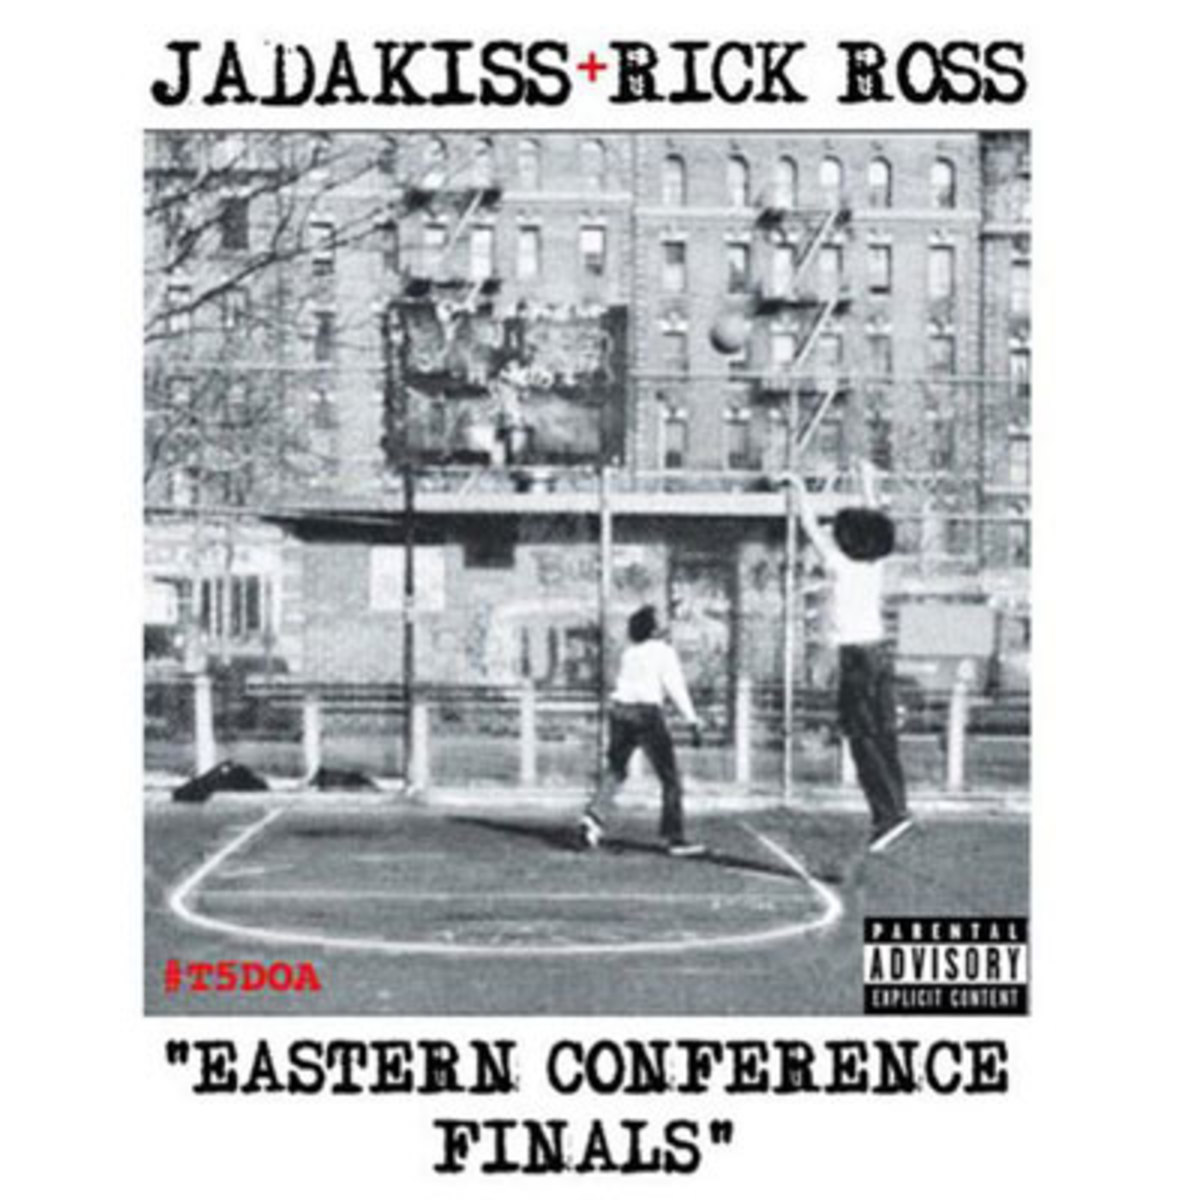 jadakiss-eastern-conference-finals.jpg